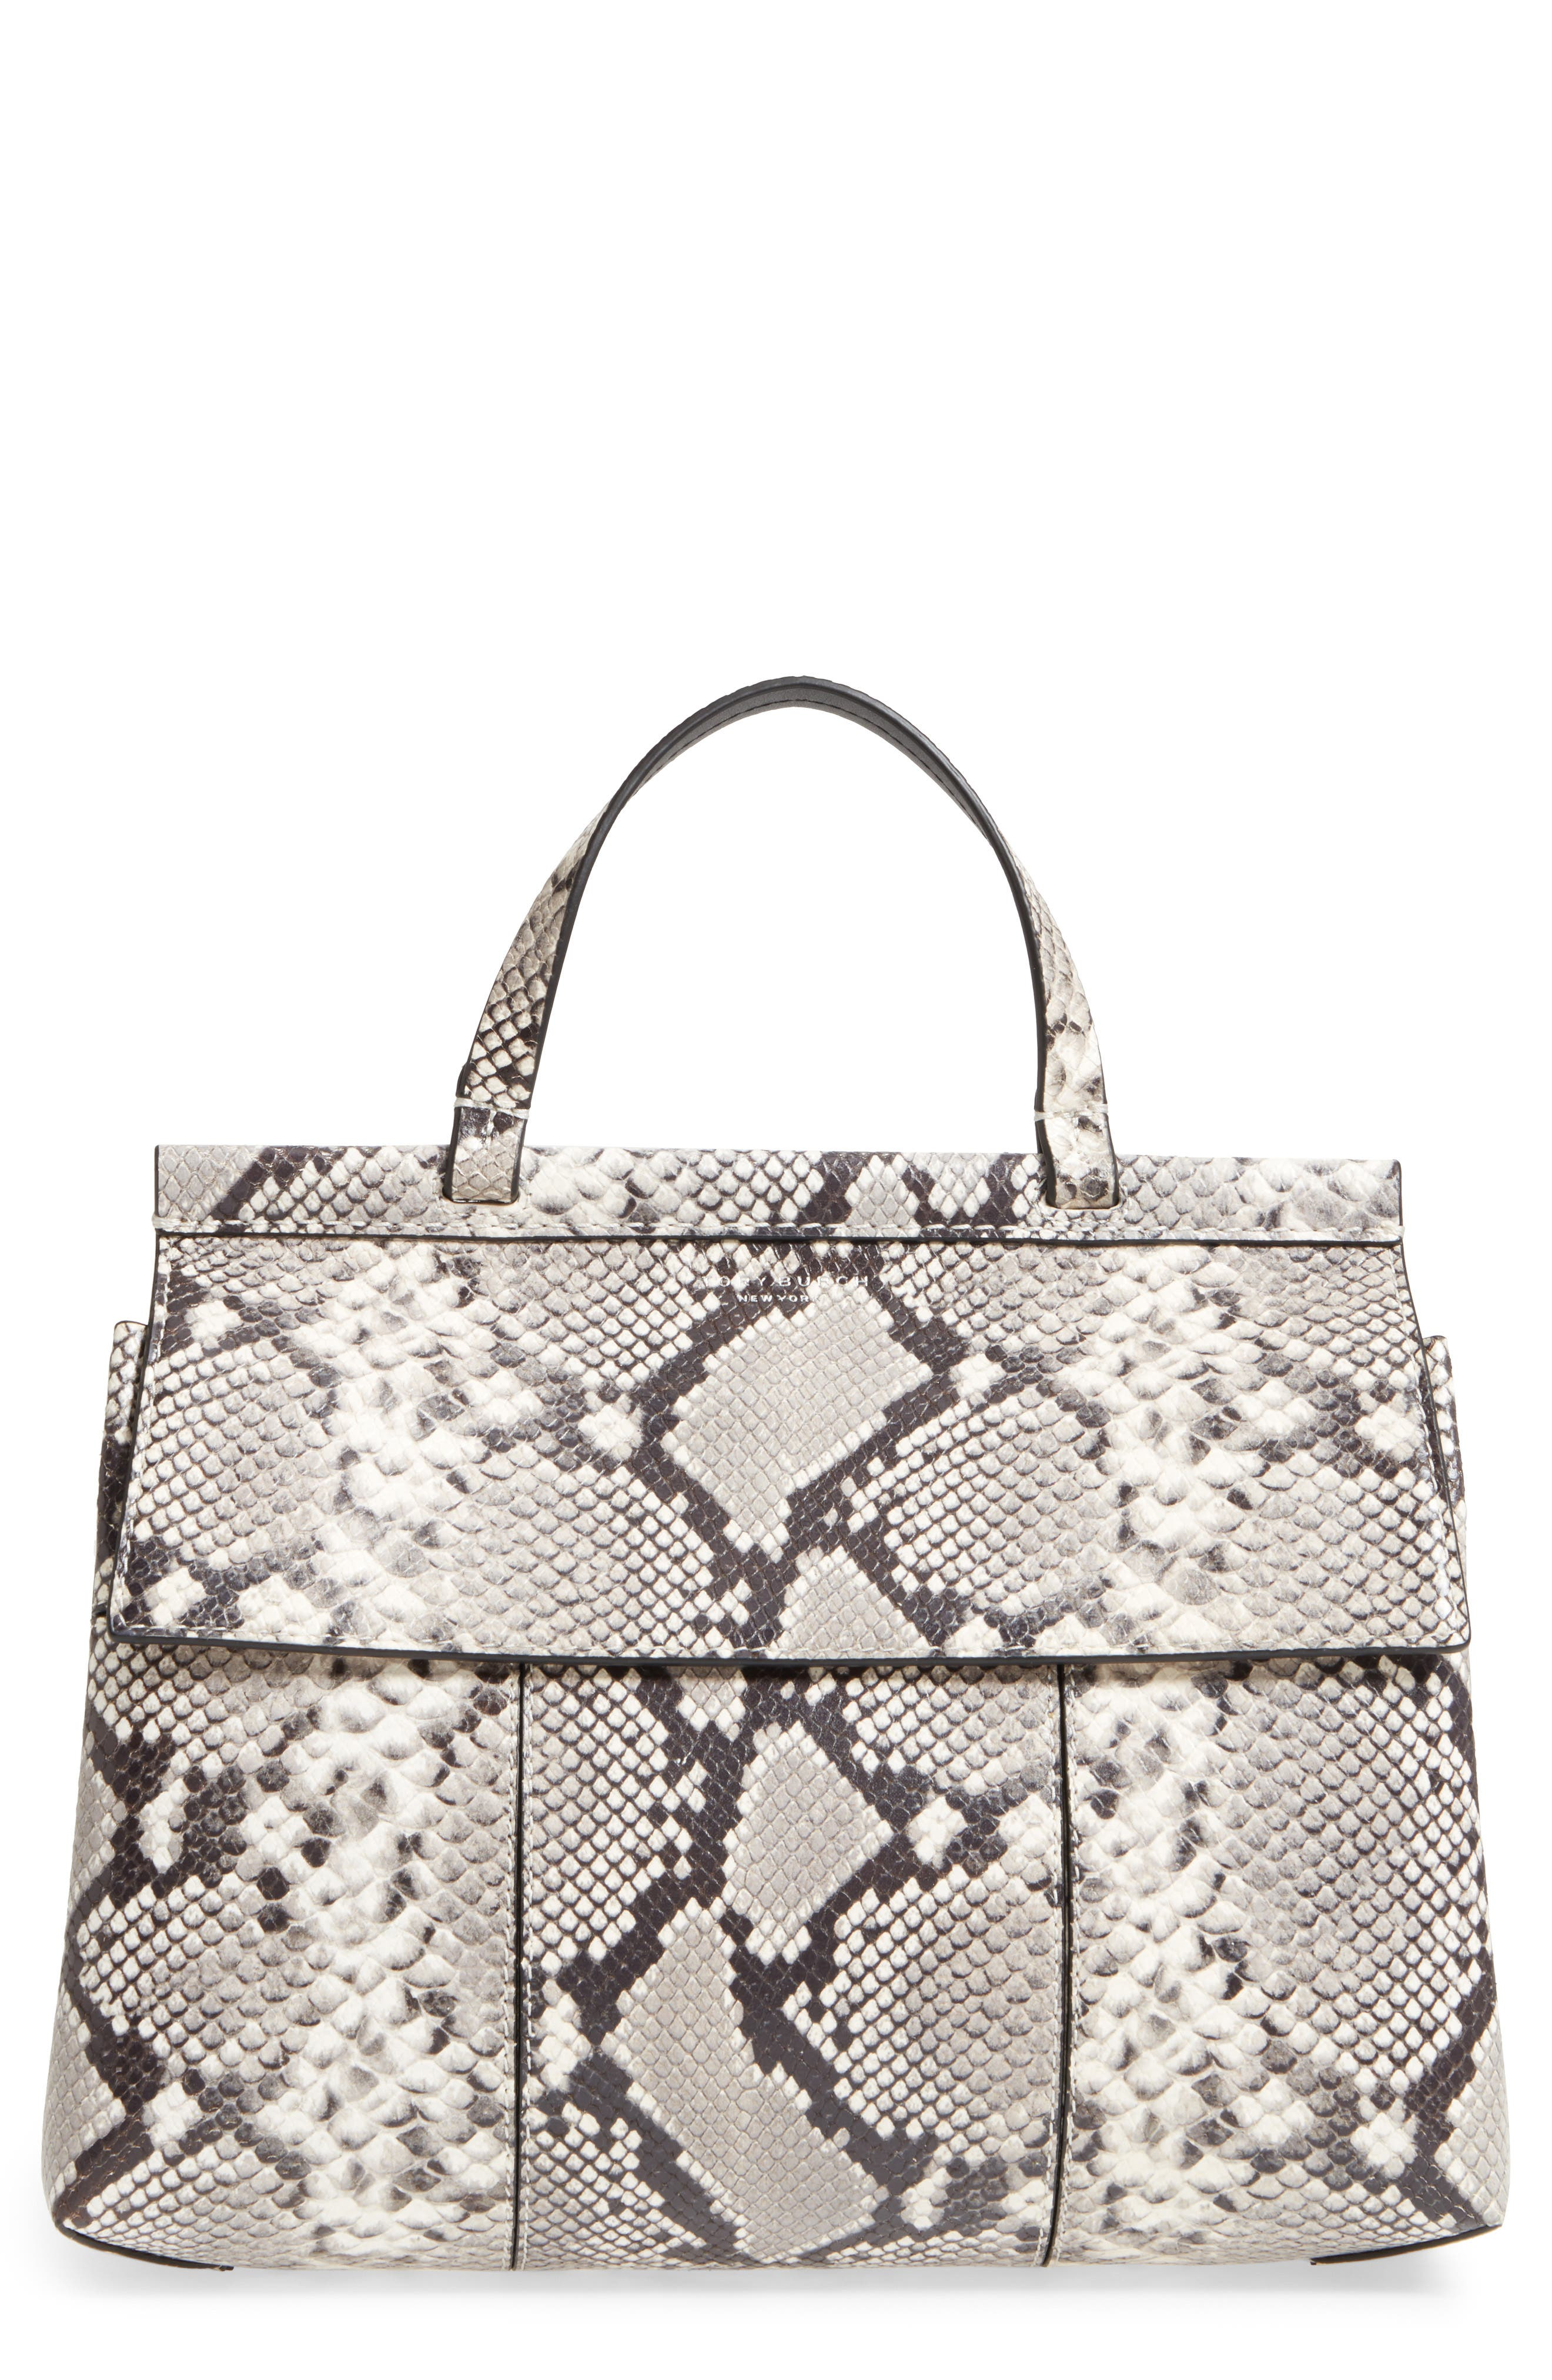 Tory Burch Block-T Snakeskin Embossed Leather Satchel